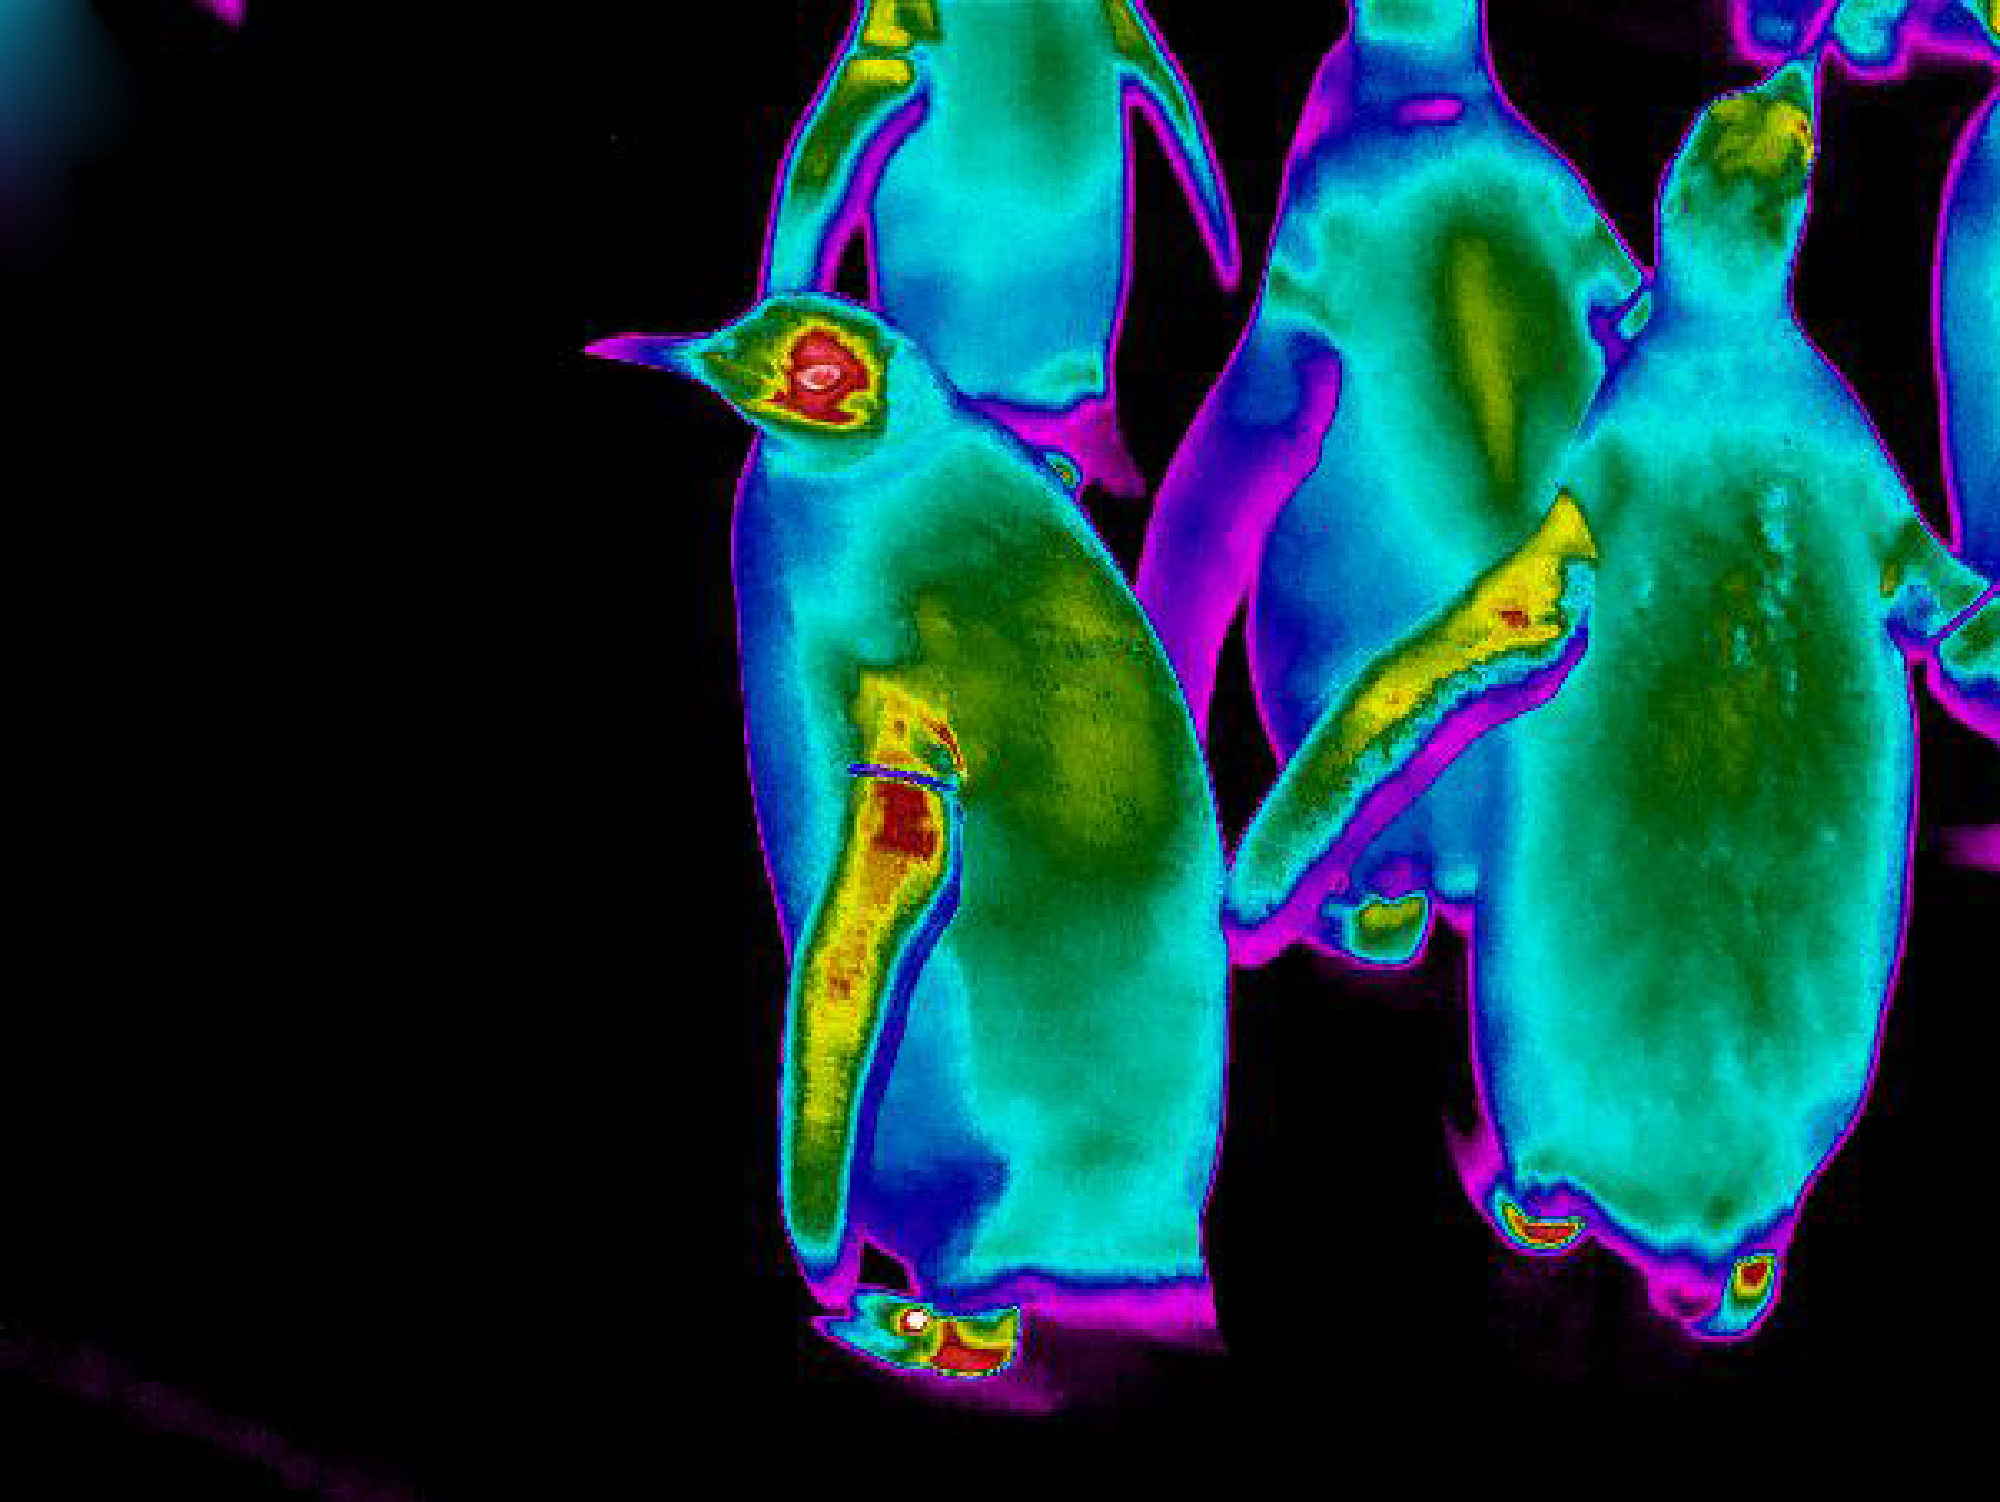 King Penguins showing high heat loss from flippers, feet and head at Edinburgh Zoo.